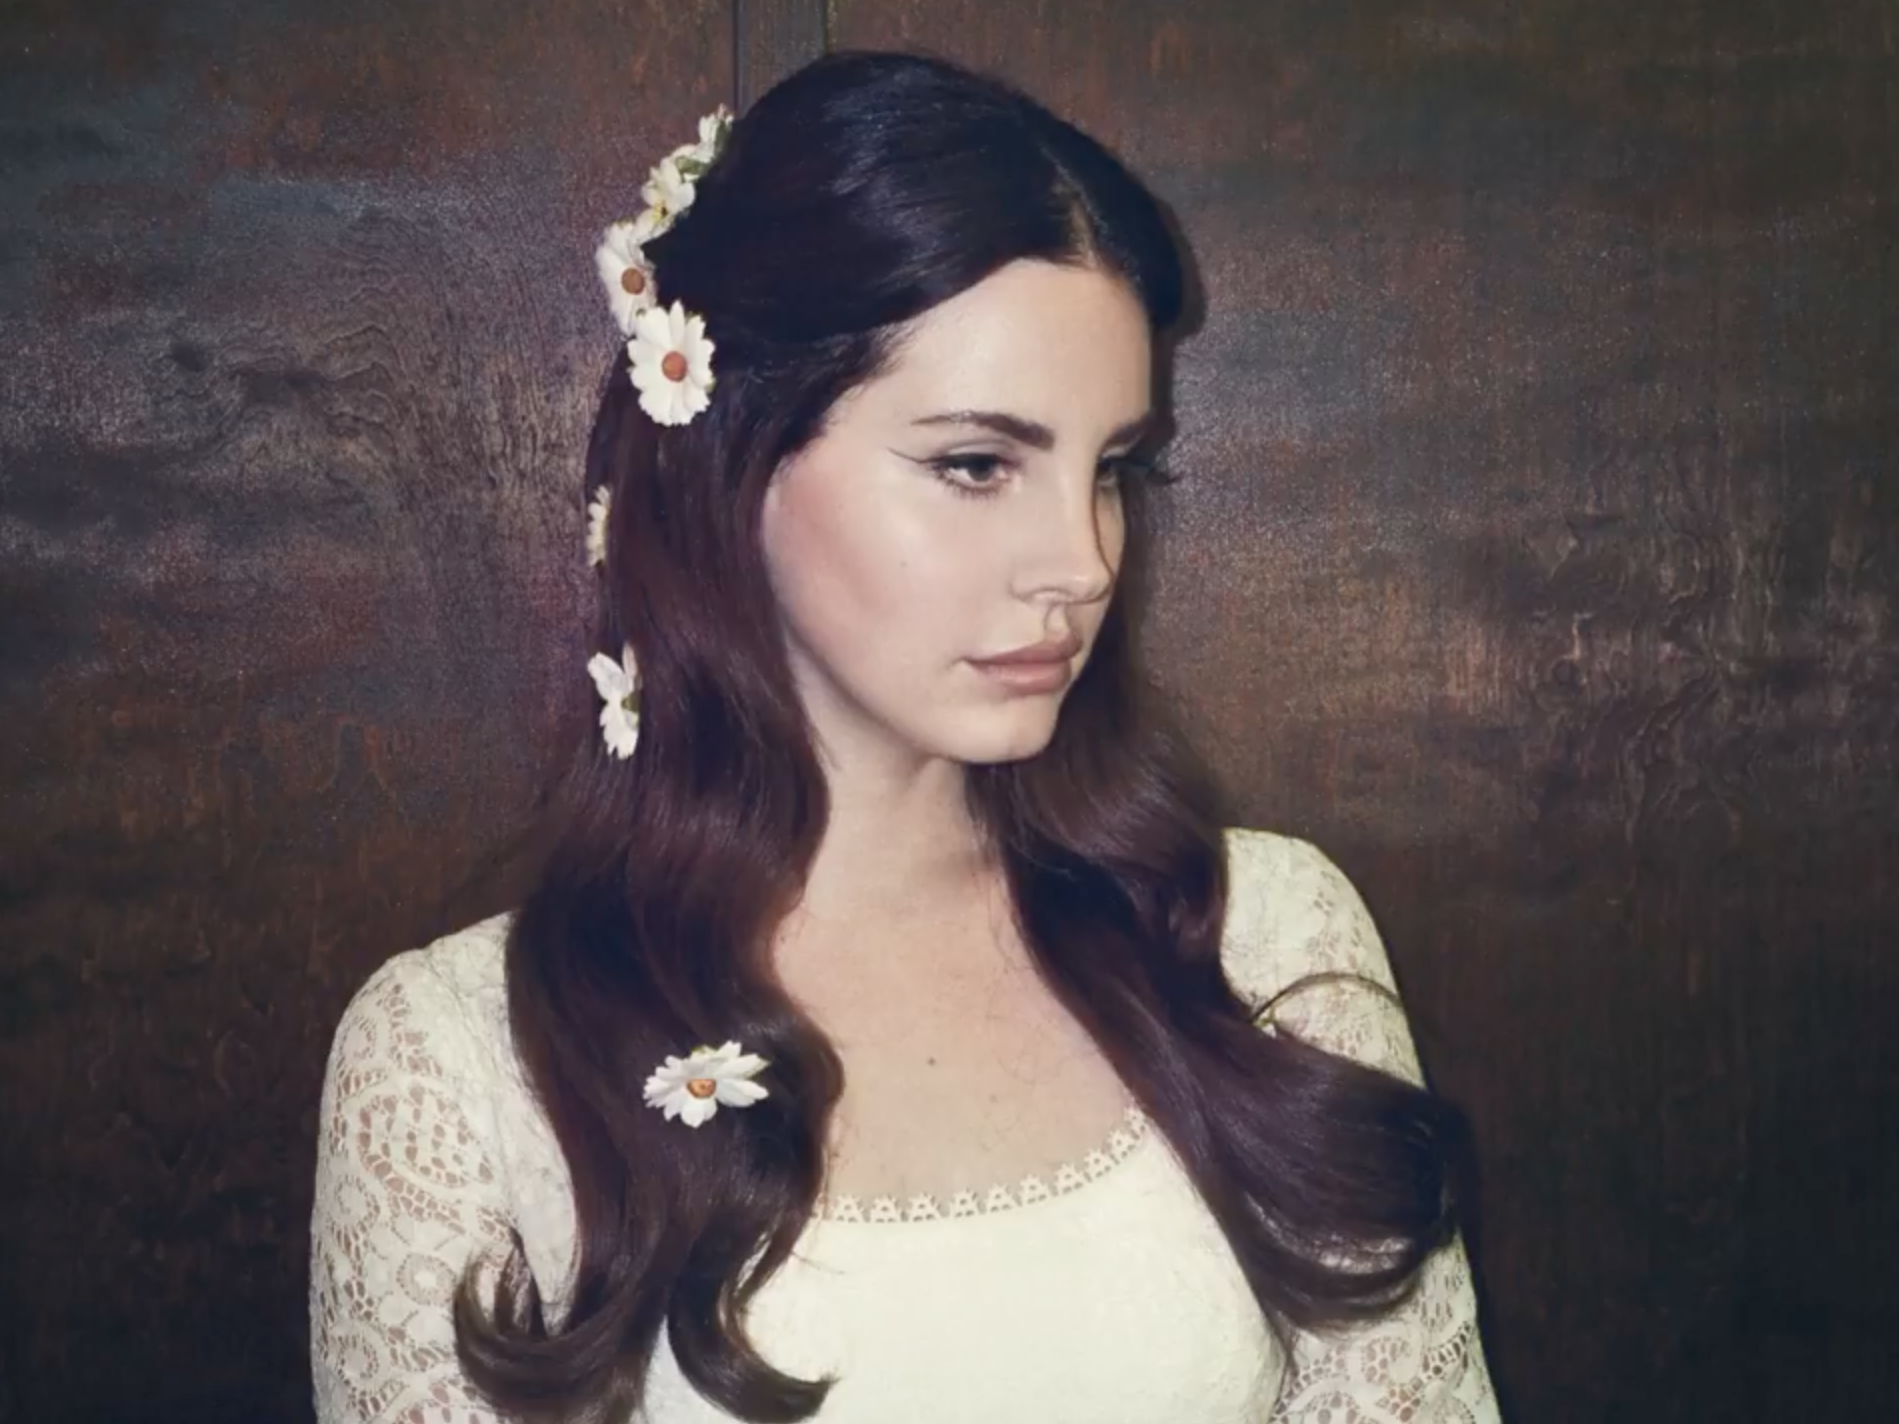 Lana Del Rey Shares New Song 'Coachella